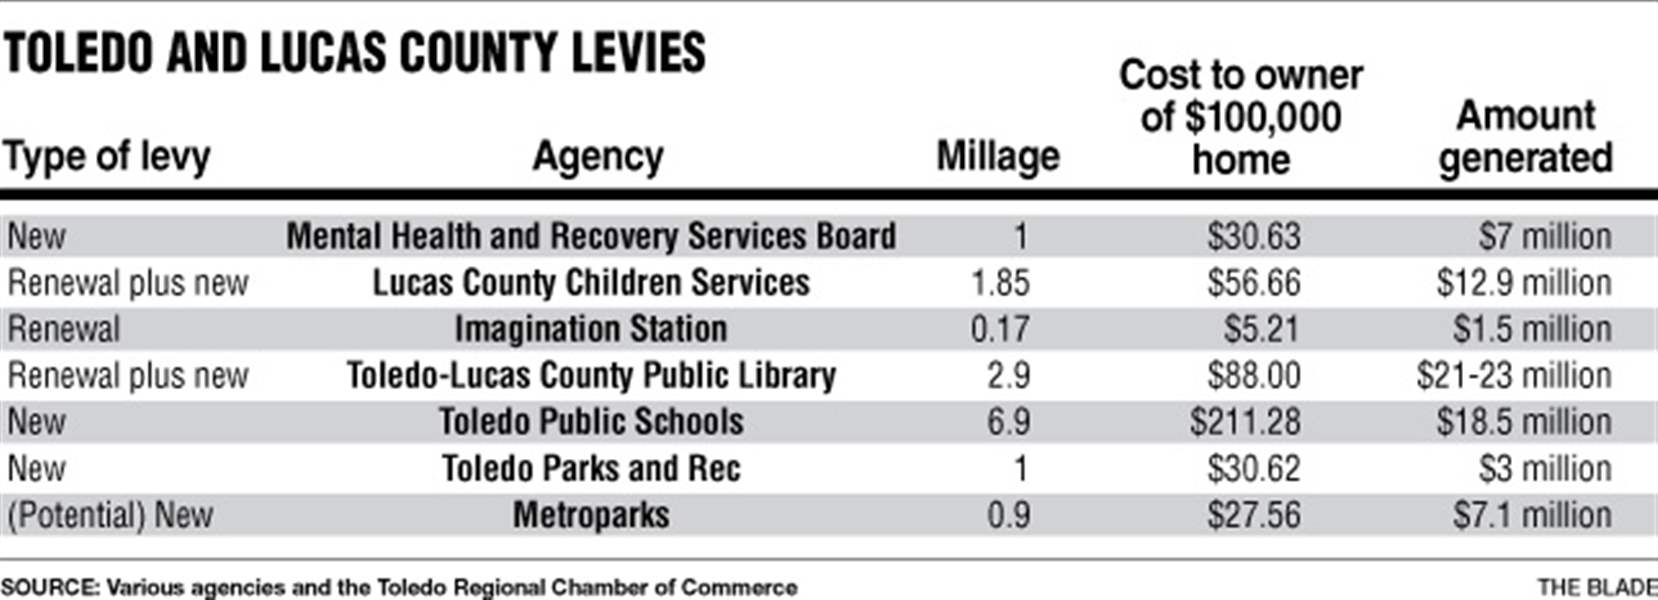 toledo-and-lucas-county-levies